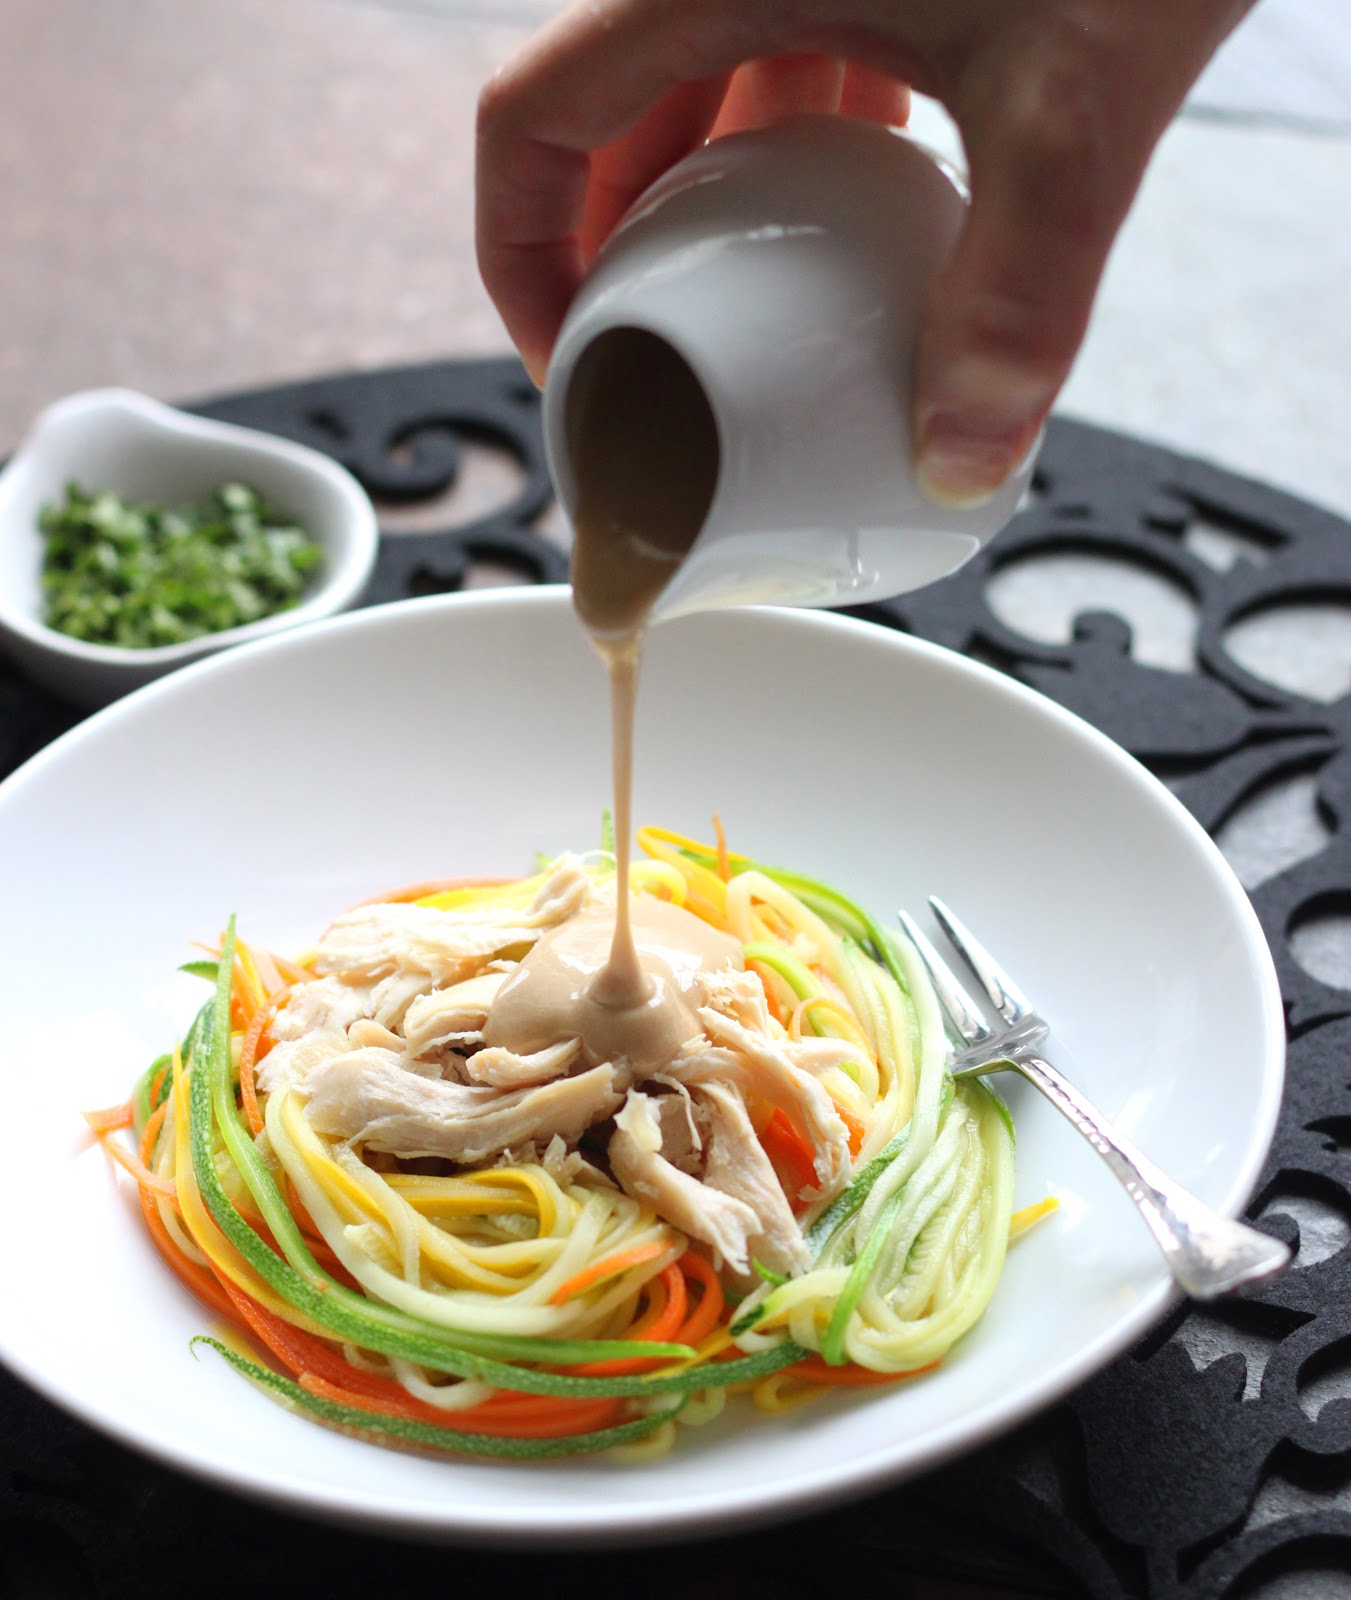 The Cilantropist: Zucchini Noodles with Chicken and Tangy Peanut Sauce